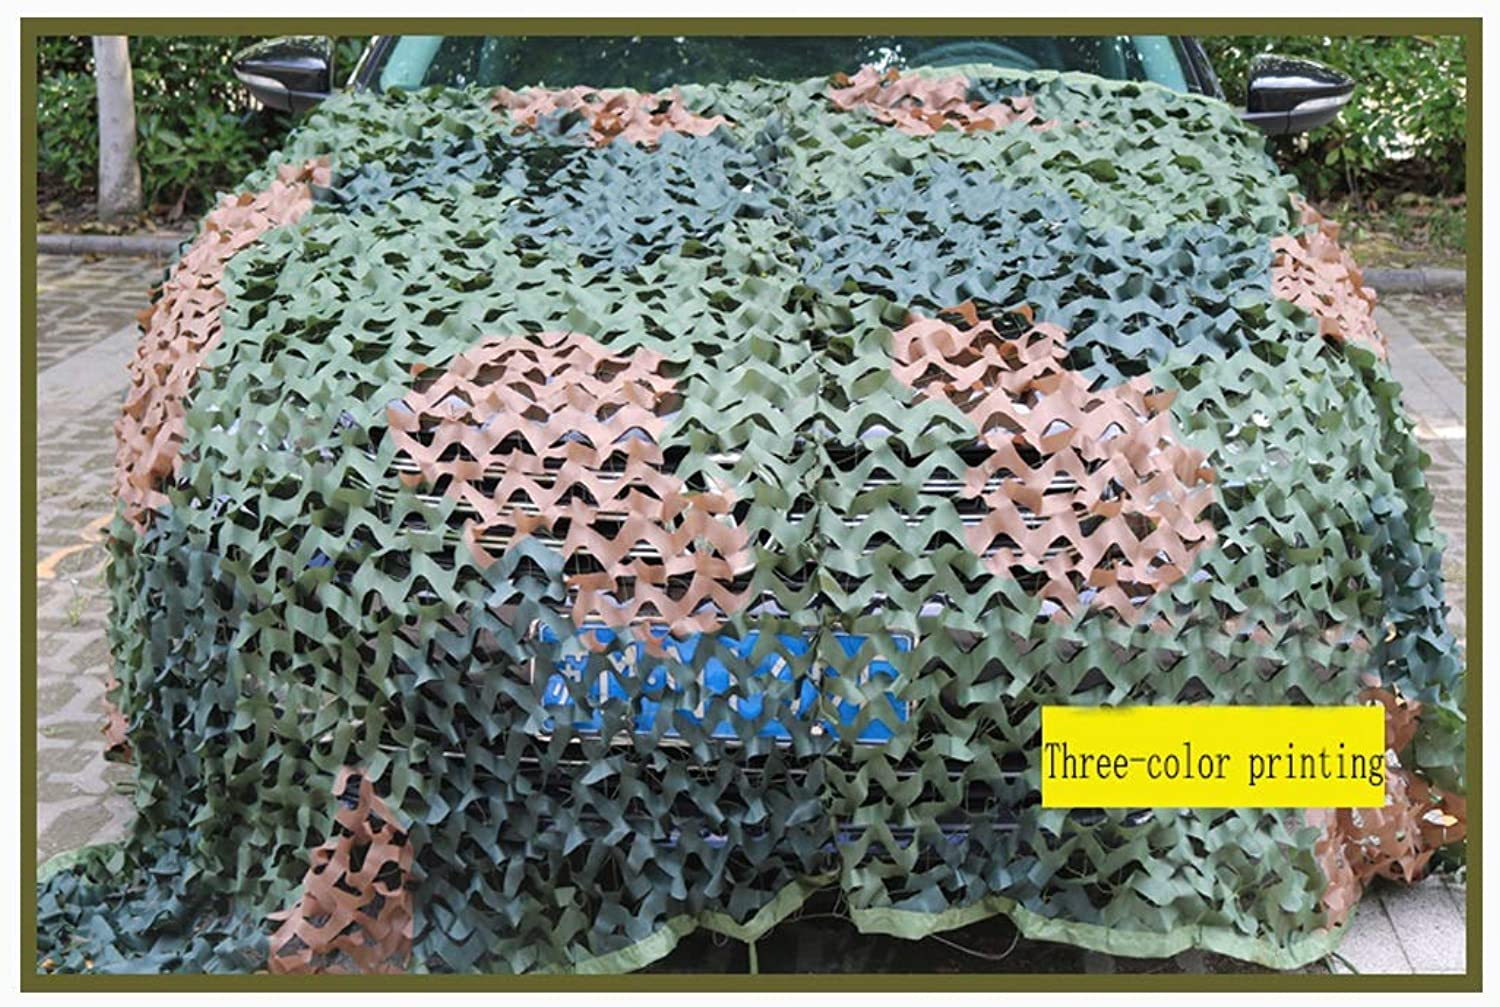 Camouflage net, Oxford Cloth, Suitable for Hunting, Camping, Shooting, Sunshade, Camping, Hiding, etc, with Camouflage, Digital, Pure Green, etc.